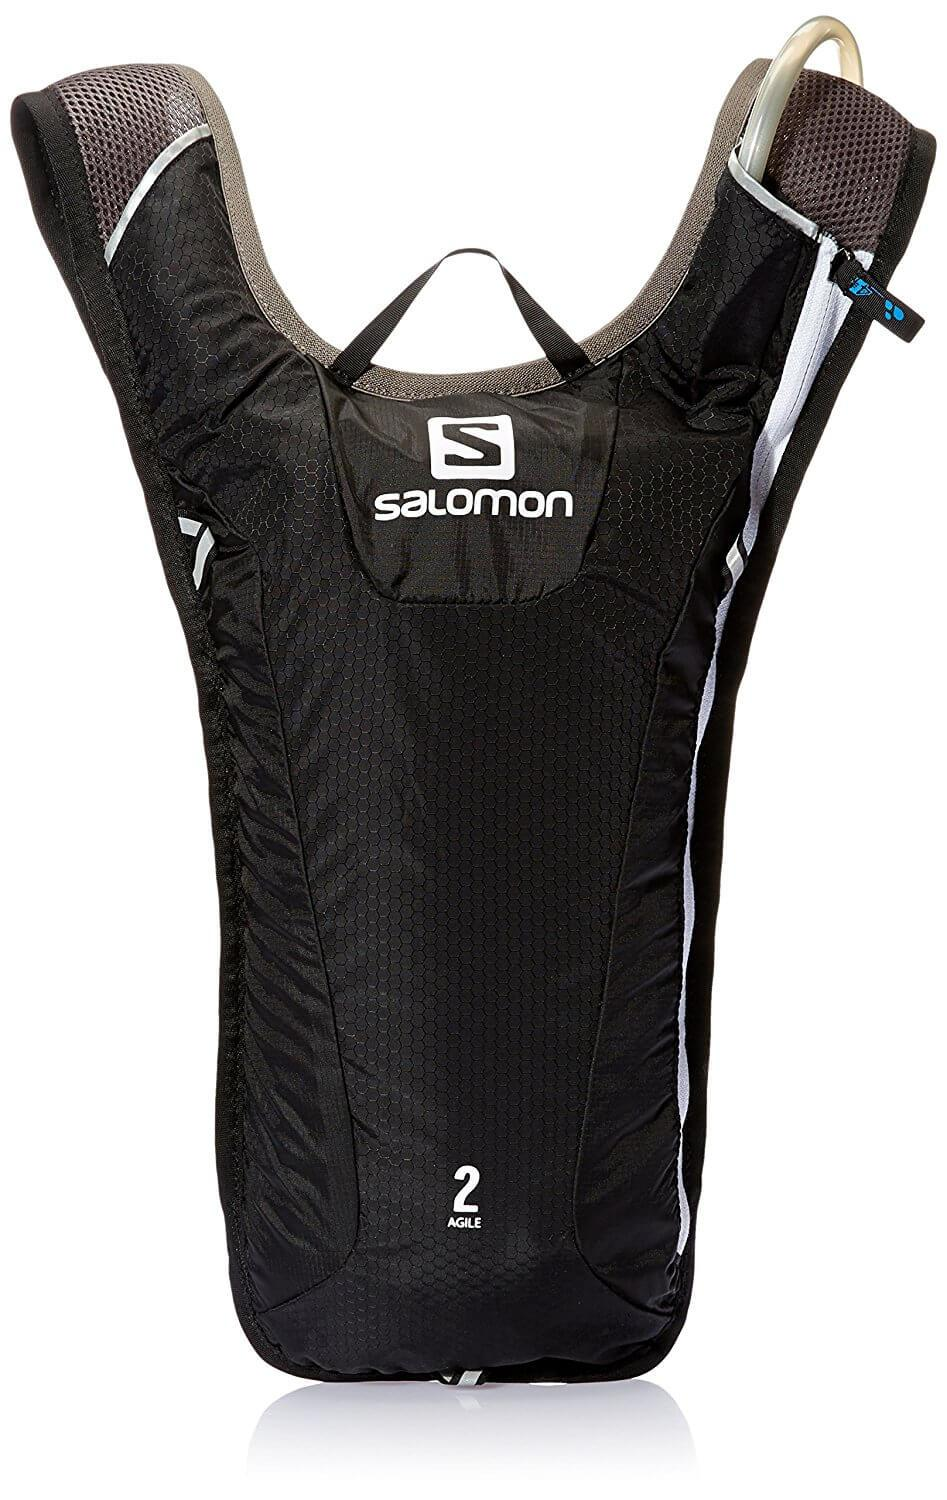 The Salomon Agile 2 Hydration Pack features one large compartment for storage